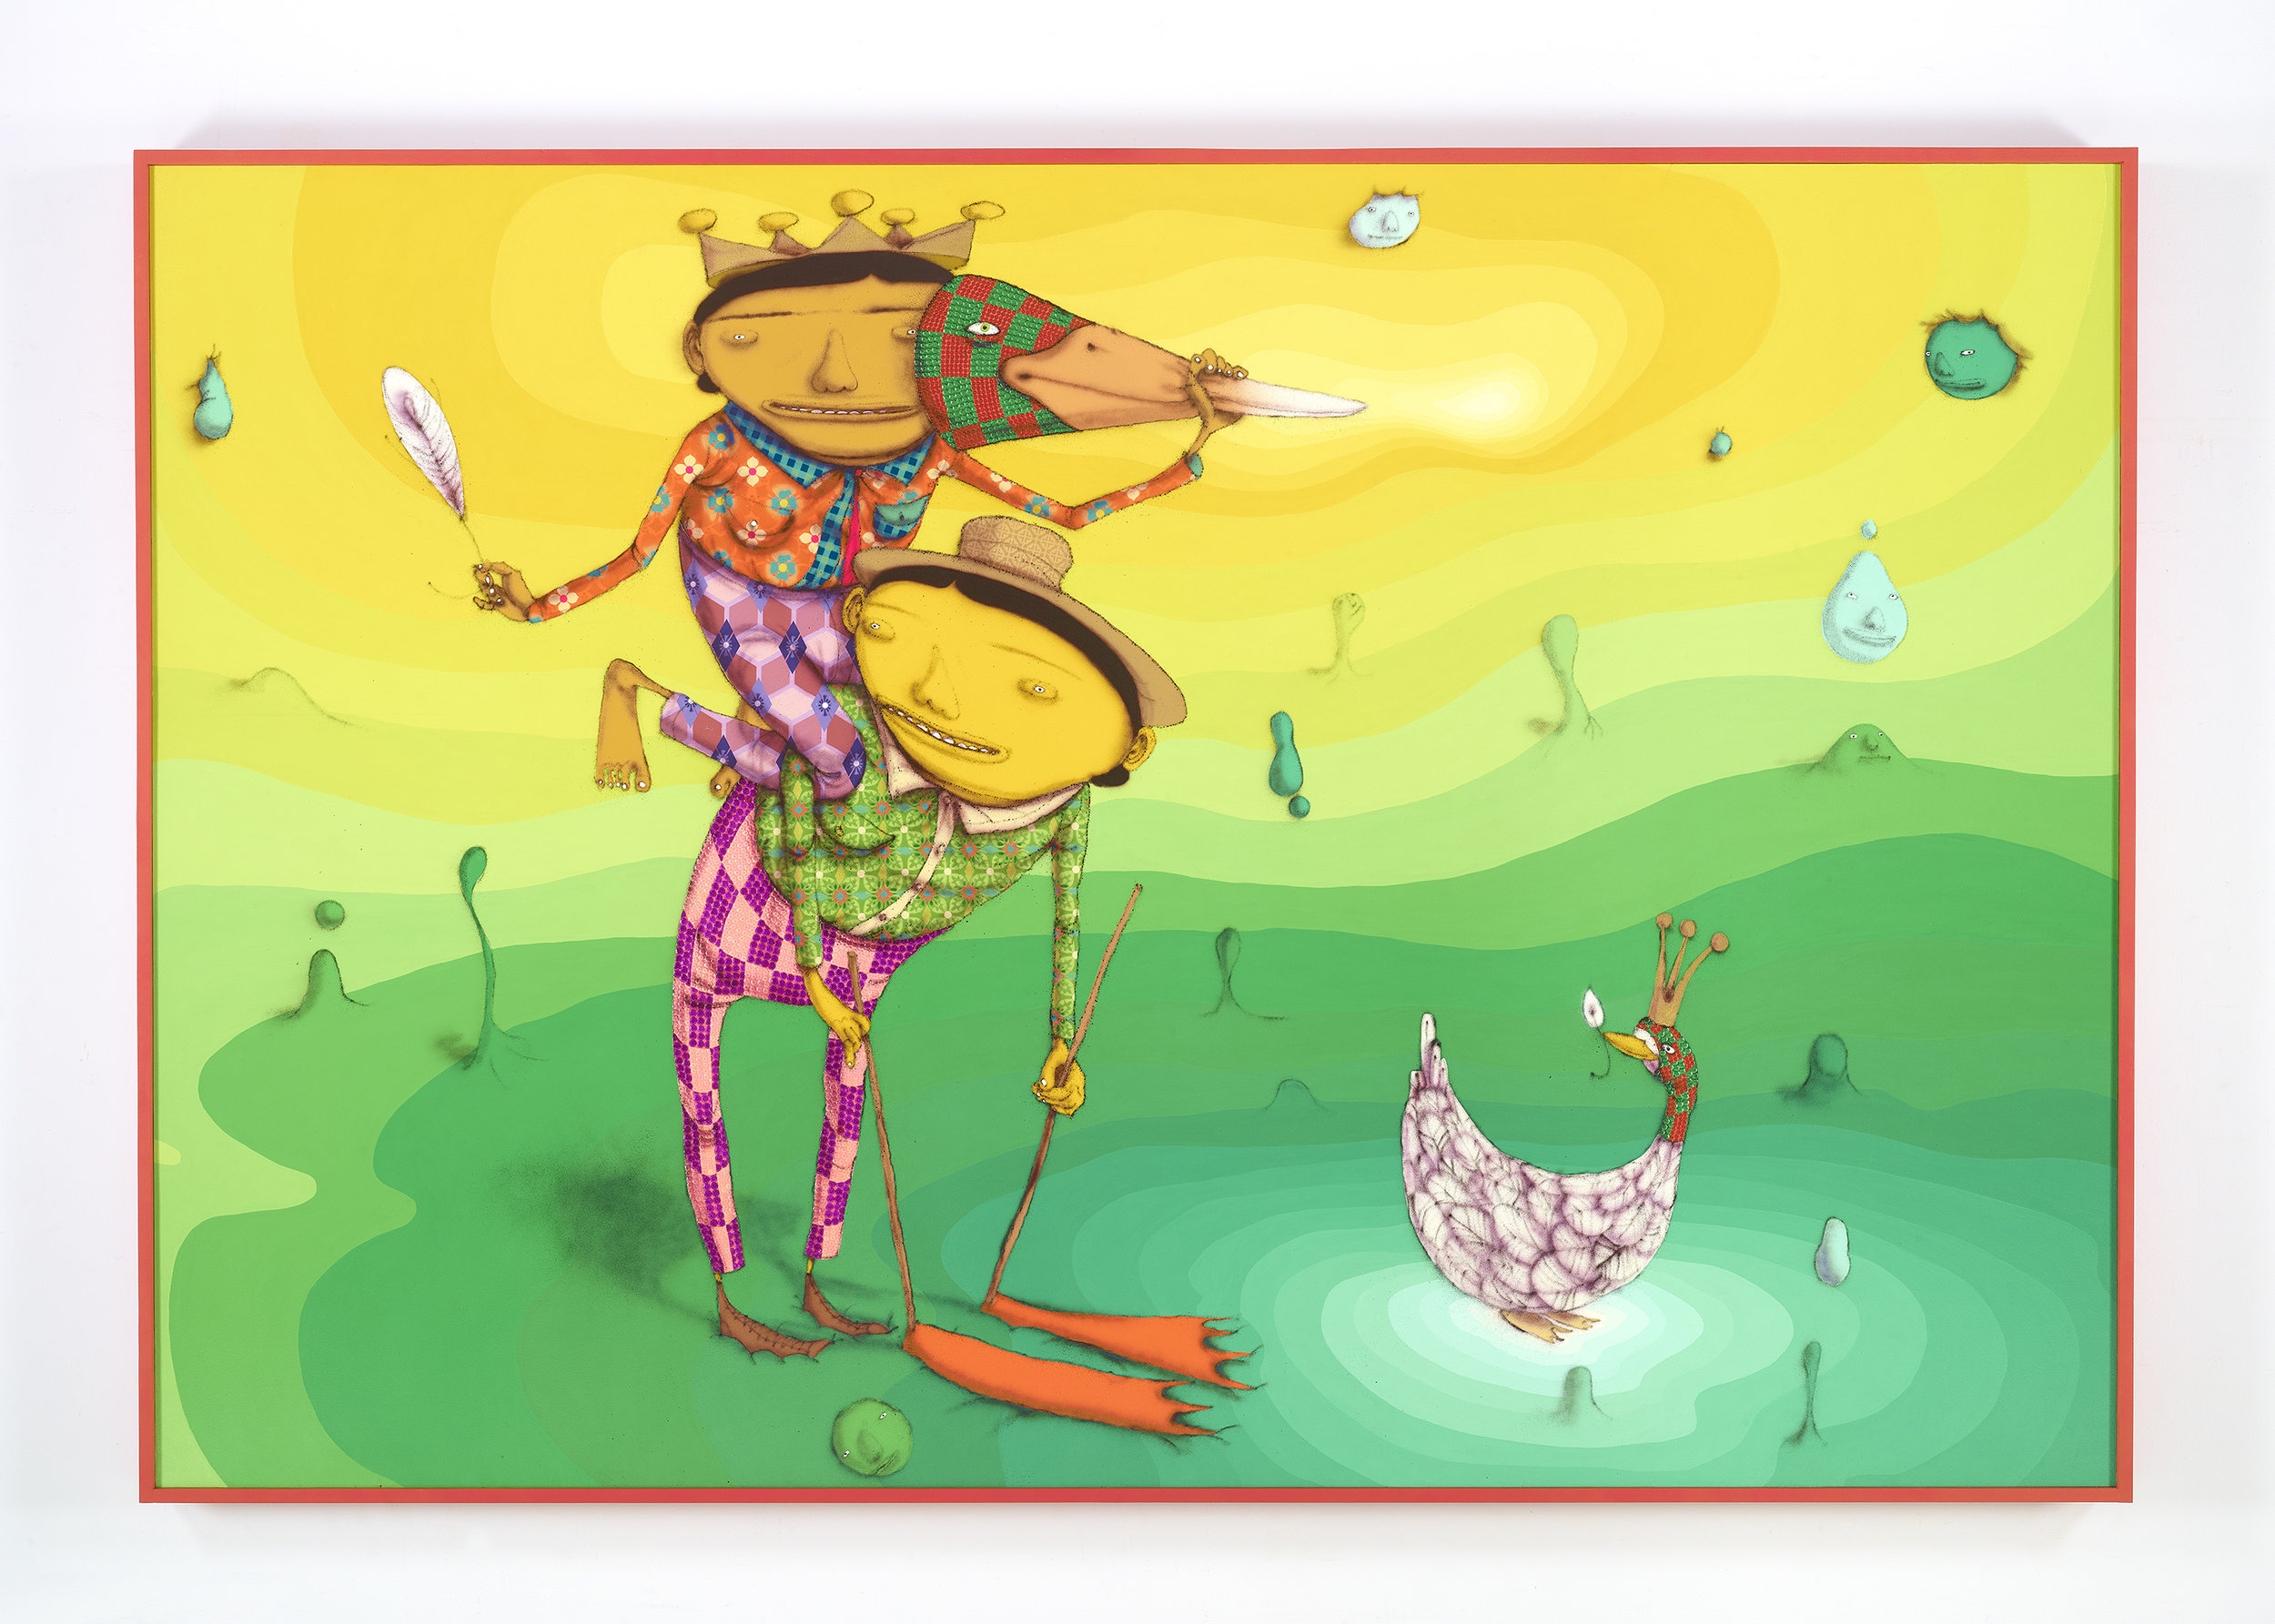 OSGEMEOS O Pato Rei (The King Duck), 2016 mixed media on wood board 109.84 x 74.41 x 5.51 inches (framed) 279 x 189 x 14 cm Photo: Max Yawney Courtesy the artists and Lehmann Maupin, New York and Hong Kong